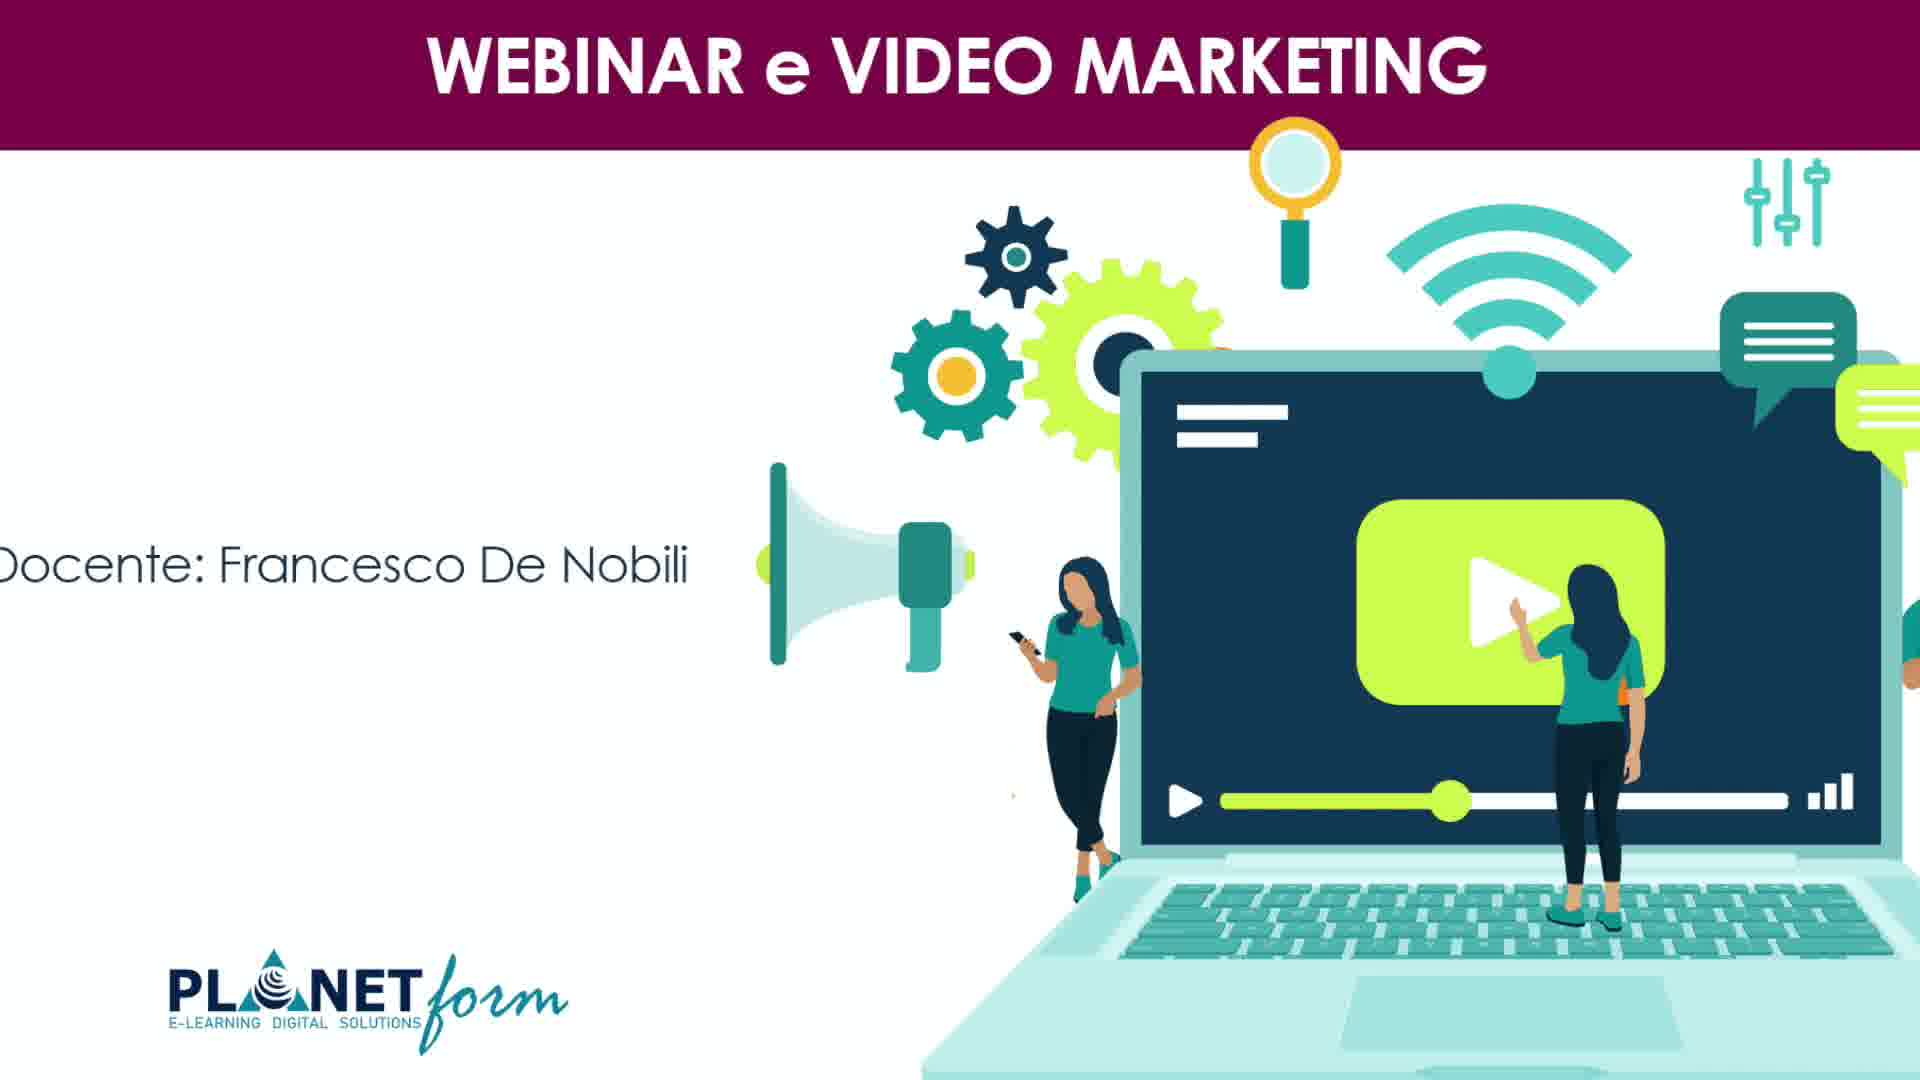 Webinar Video Marketing modulo 2